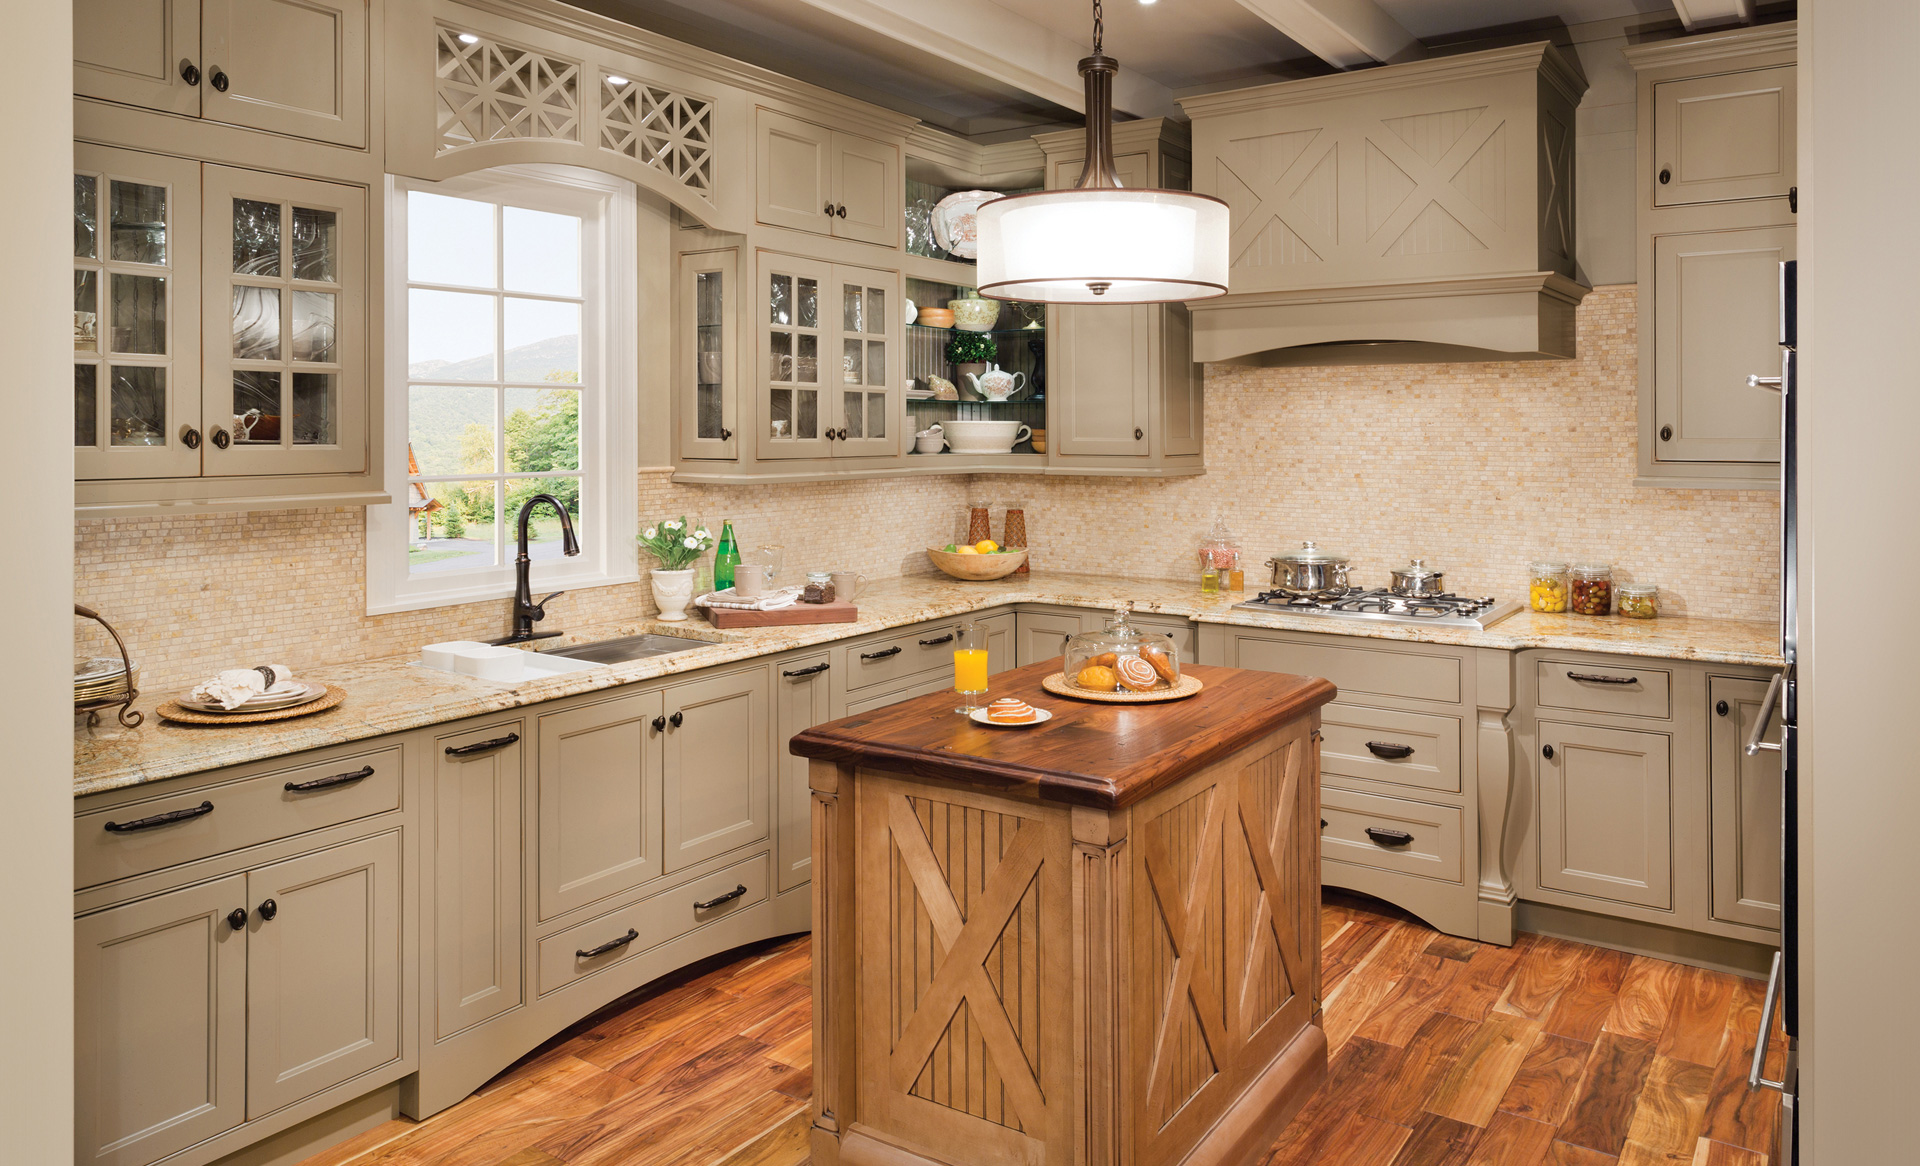 5 Great Ideas For Re Doing Your Cabinets